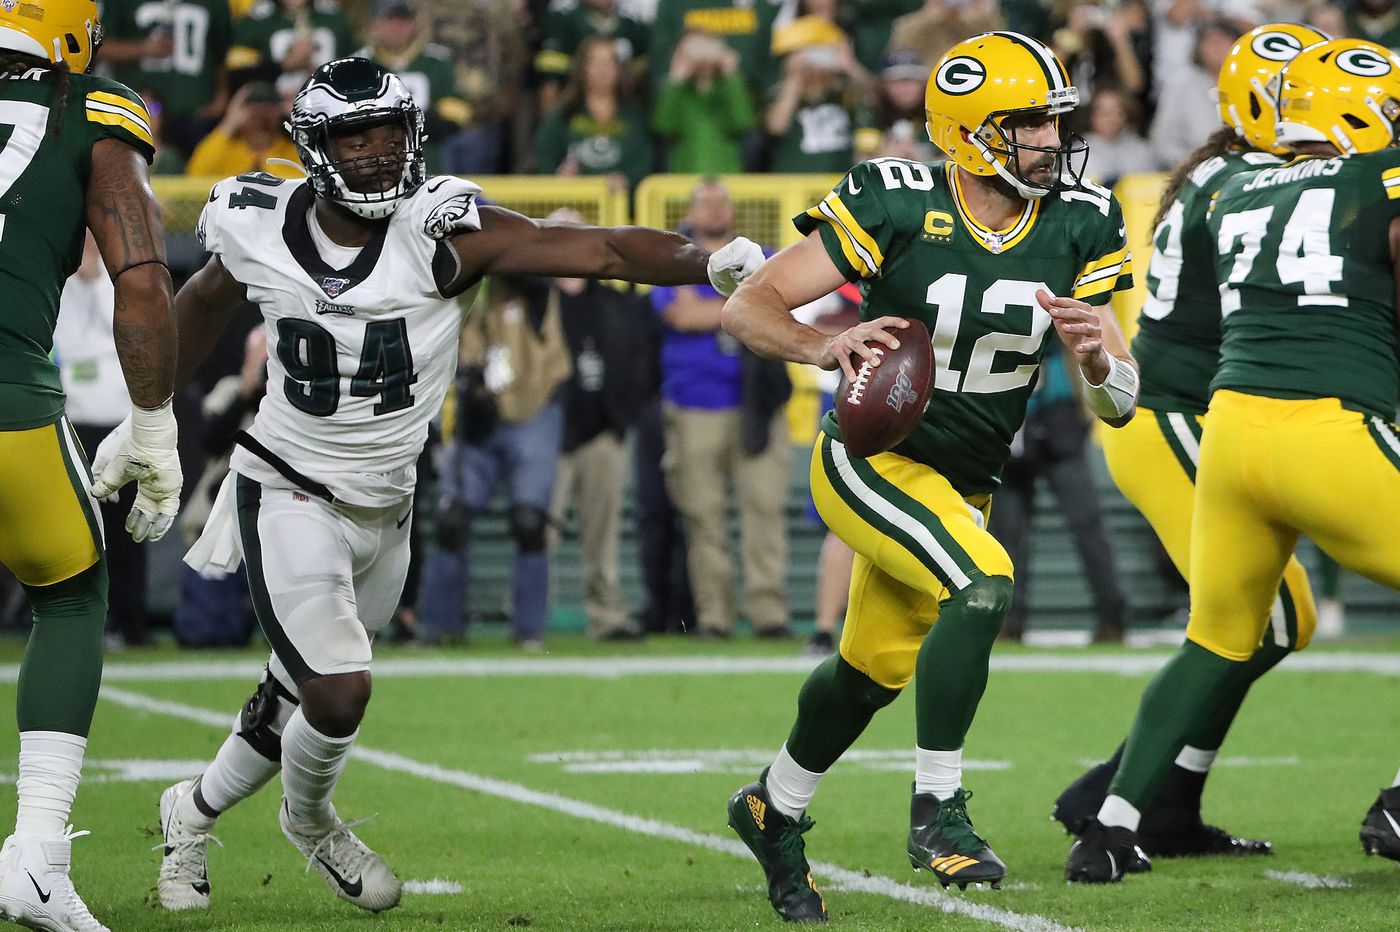 Eagles face red-hot Aaron Rodgers and a curious over/under   Sports-betting notes